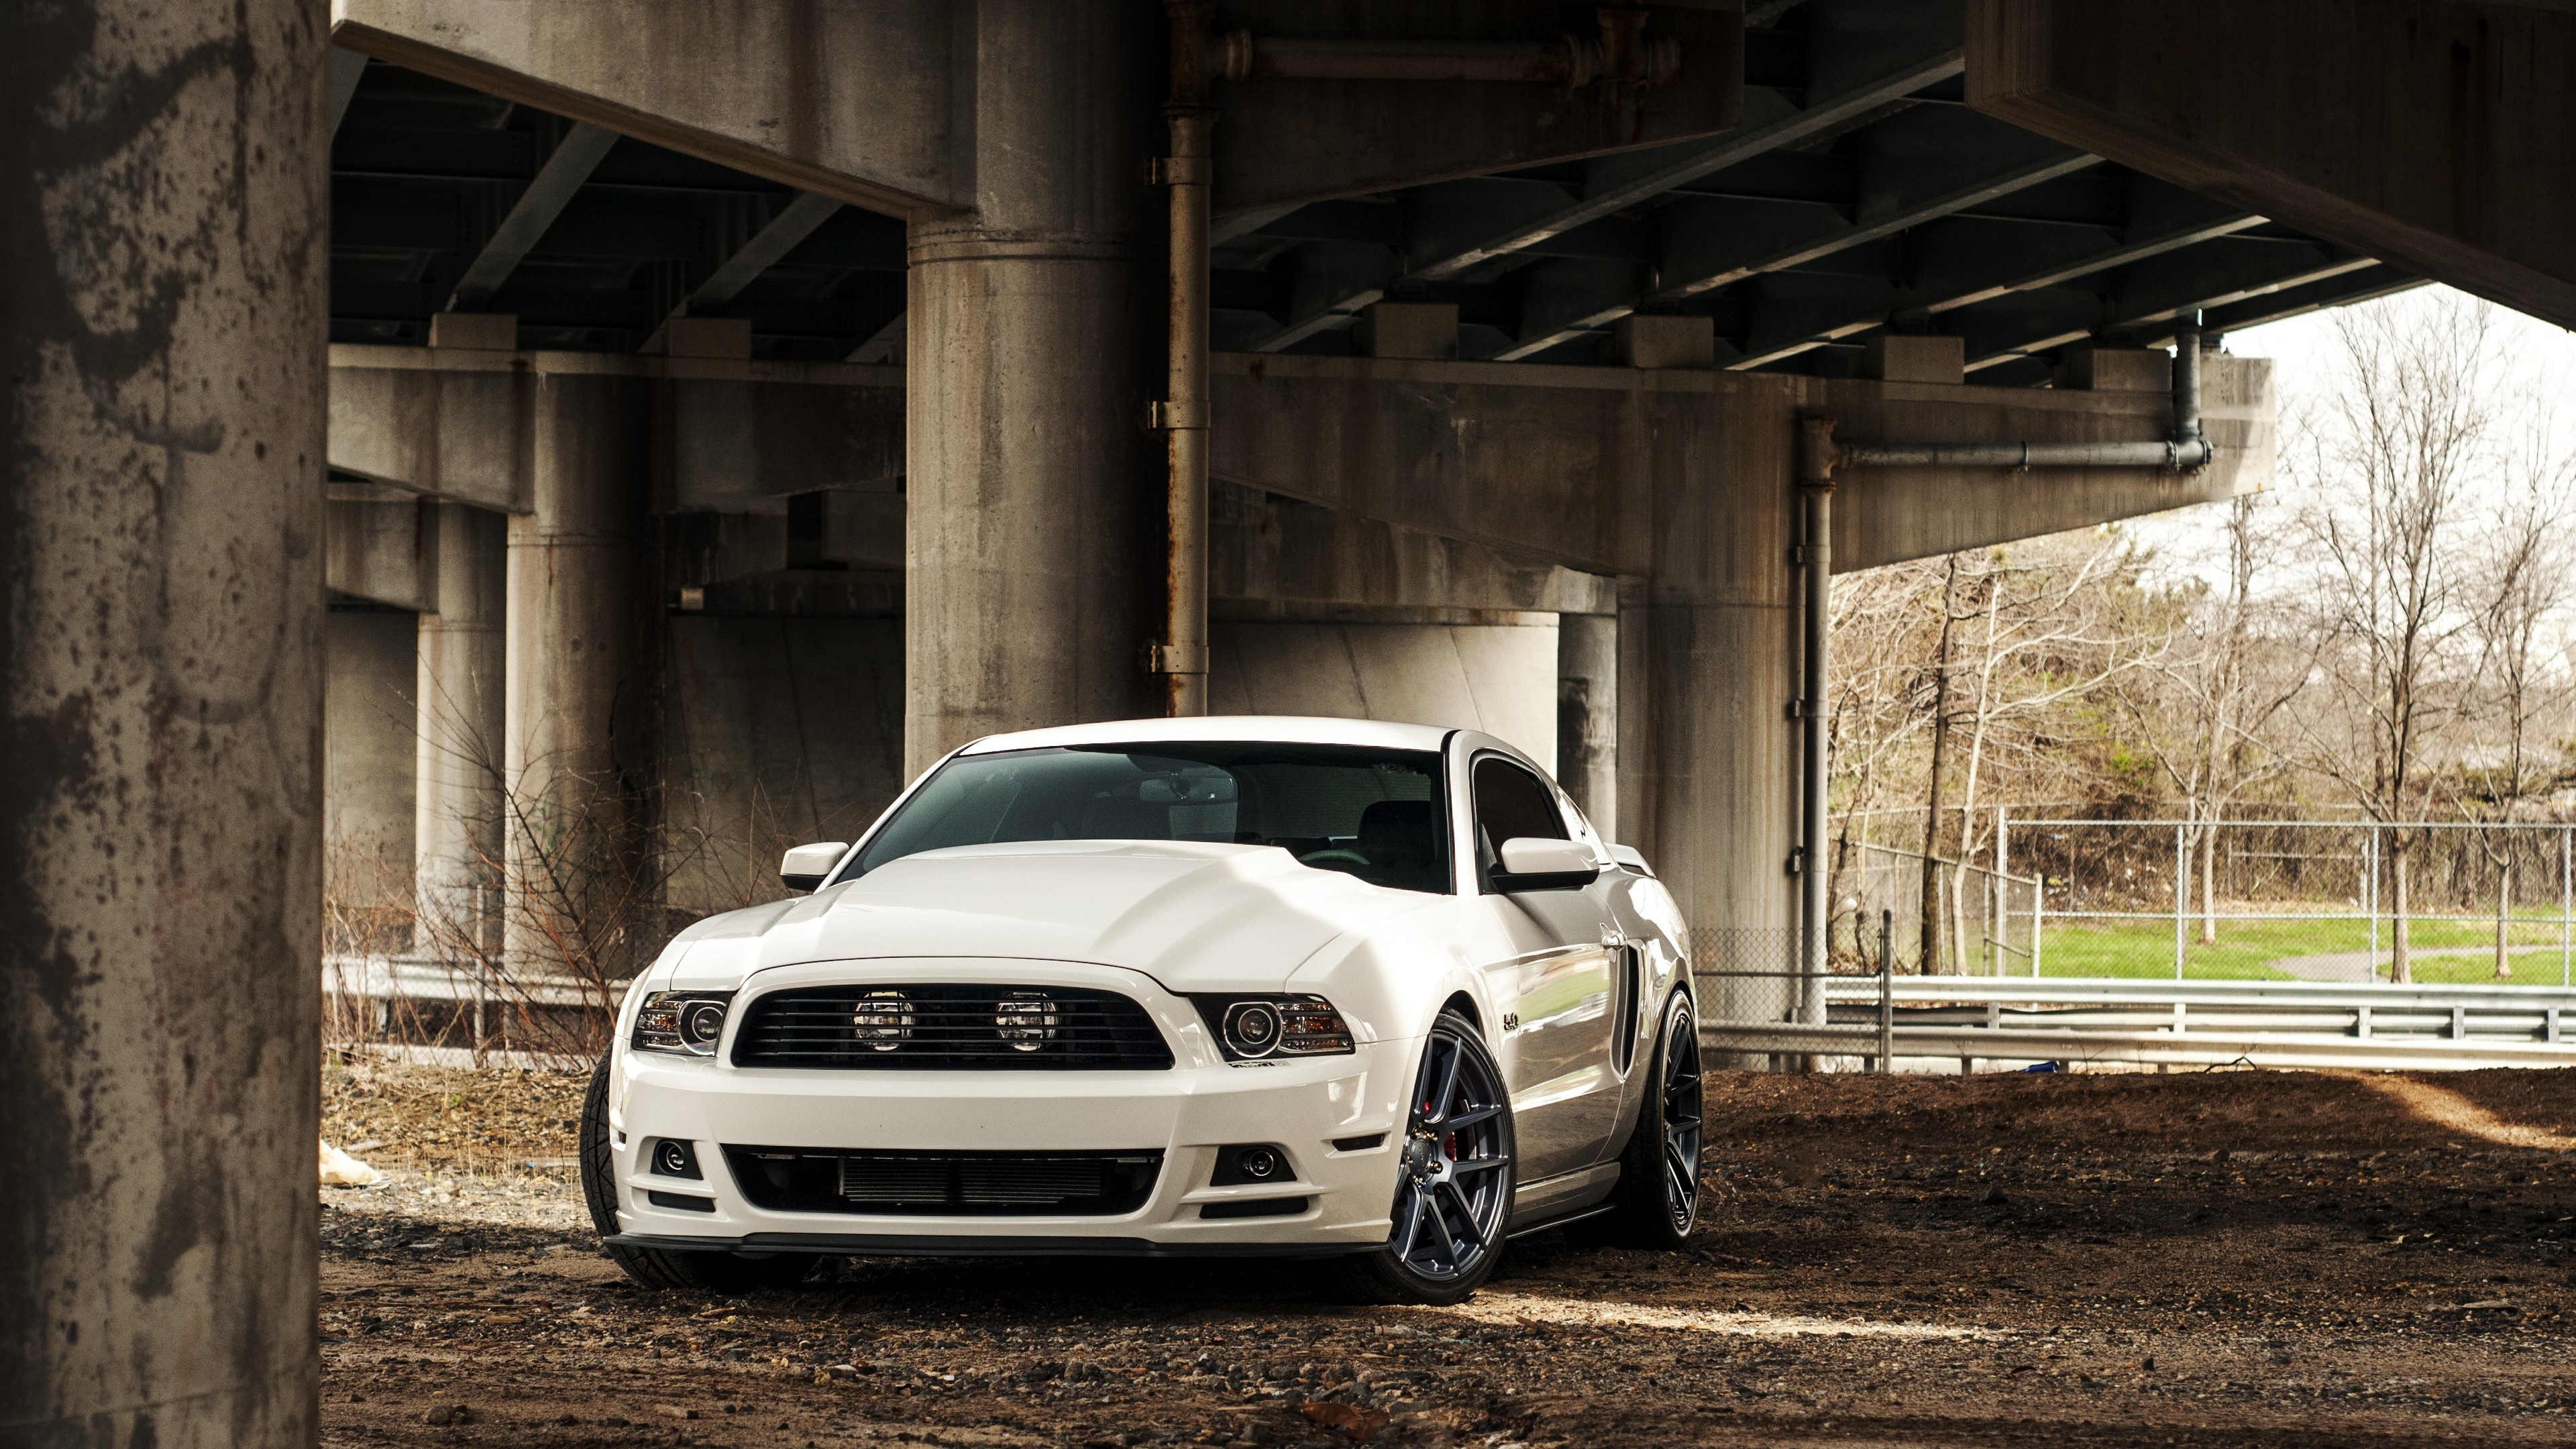 ford carol shelby gt500 4k 1557260863 - Ford Carol Shelby GT500 4k - shelby wallpapers, hd-wallpapers, ford wallpapers, ford mustang wallpapers, cars wallpapers, 4k-wallpapers, 2019 cars wallpapers